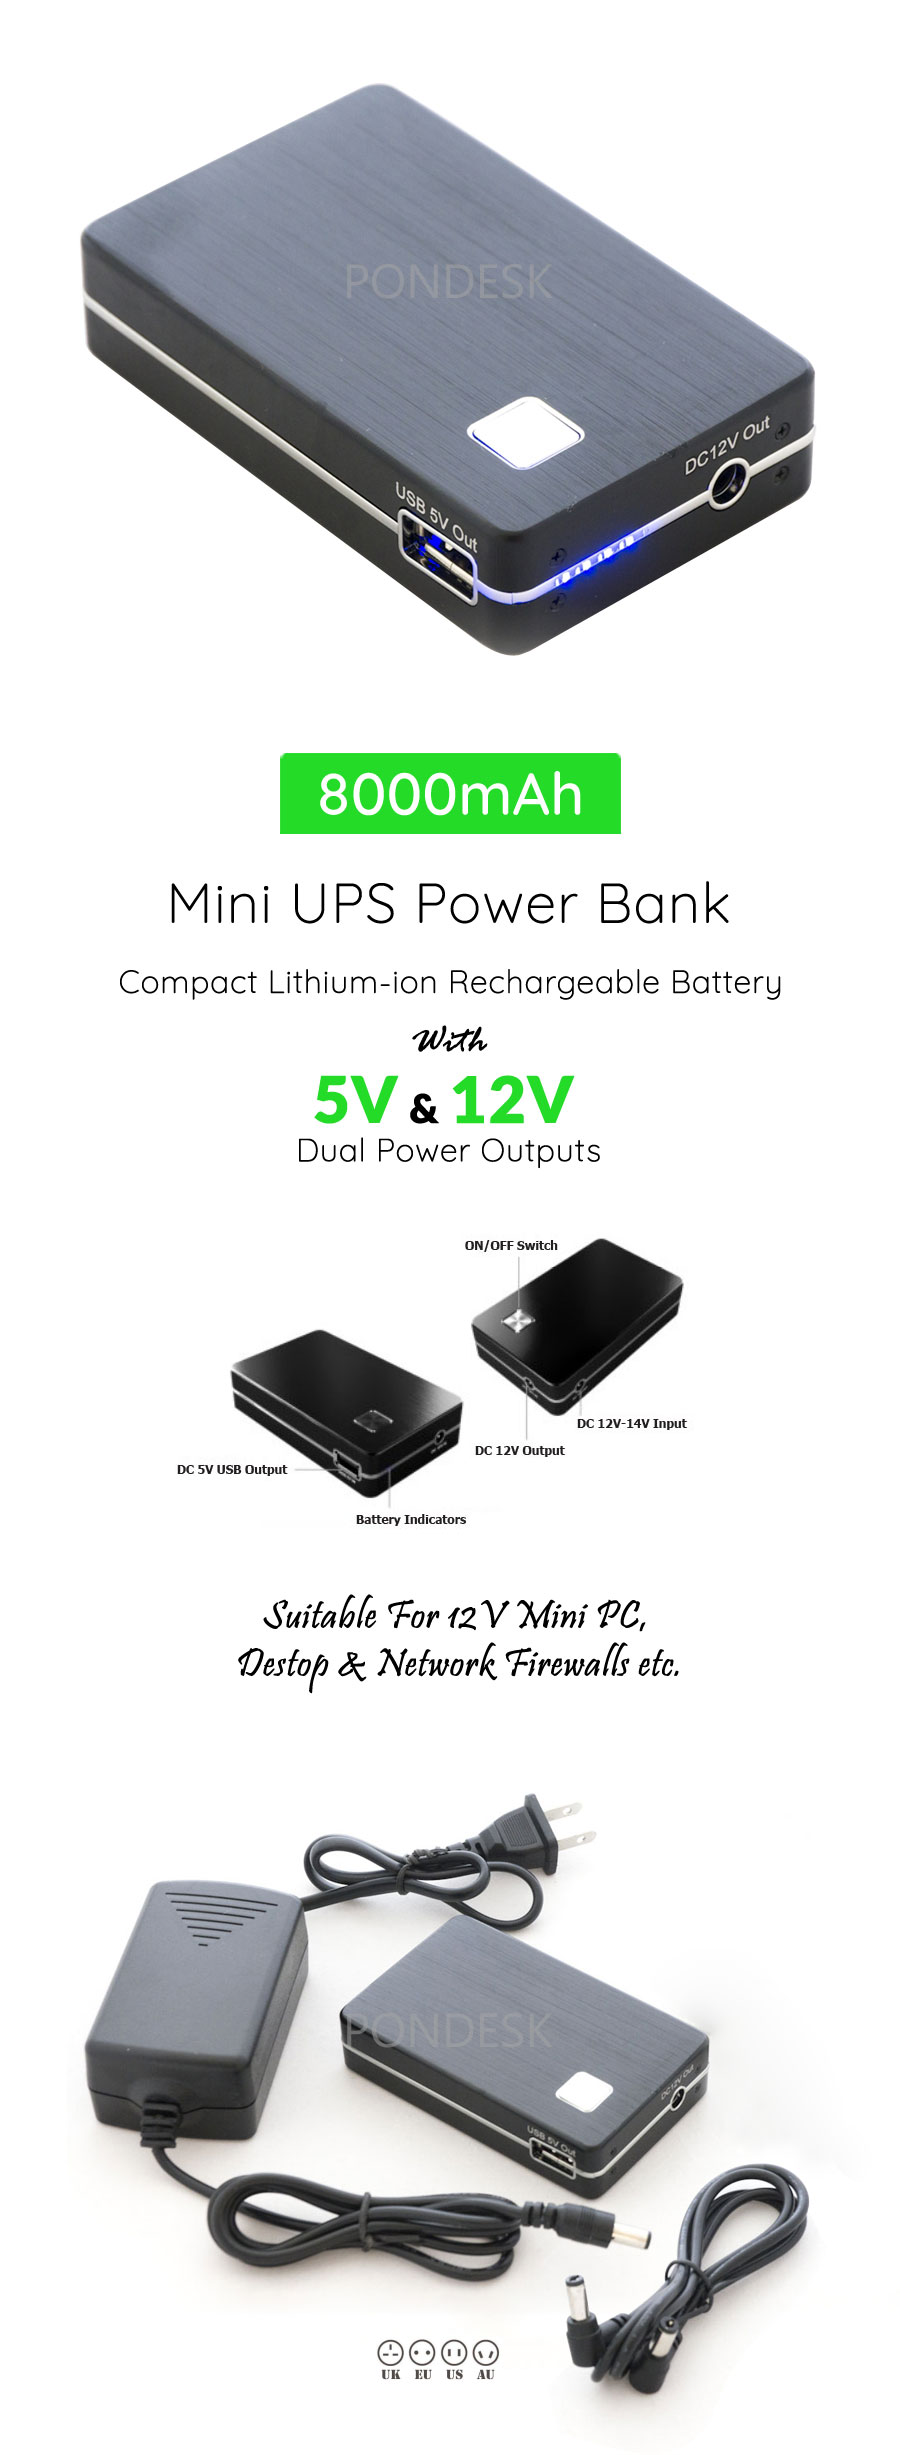 DC 12V 5V Compact Rechargeable 8000mAh Mini UPS Power Bank - PBEL-003 | Image